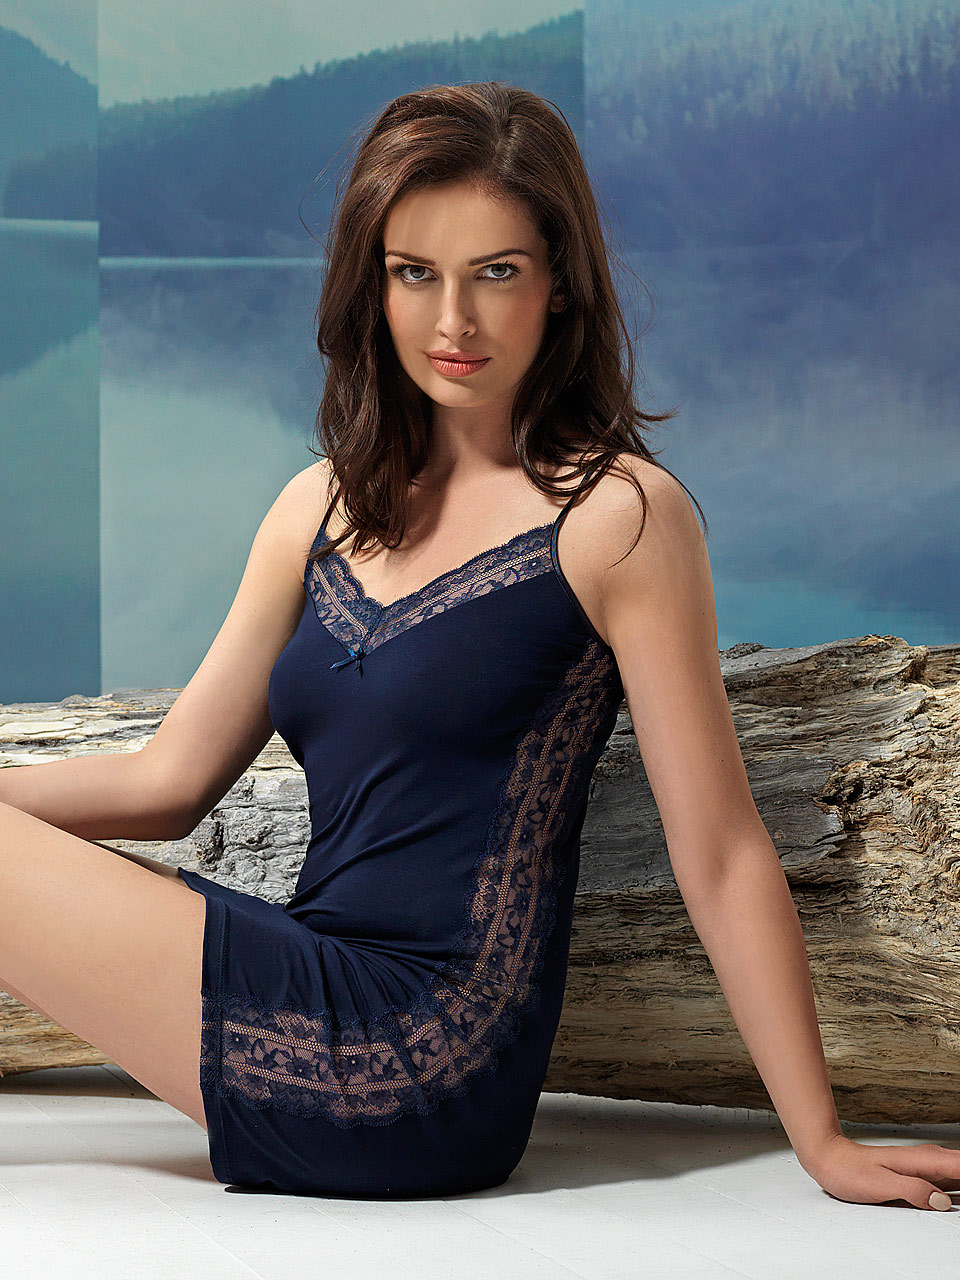 Sparkle 2942 Chemise<br />03 Navy Blue, 55 Pearl